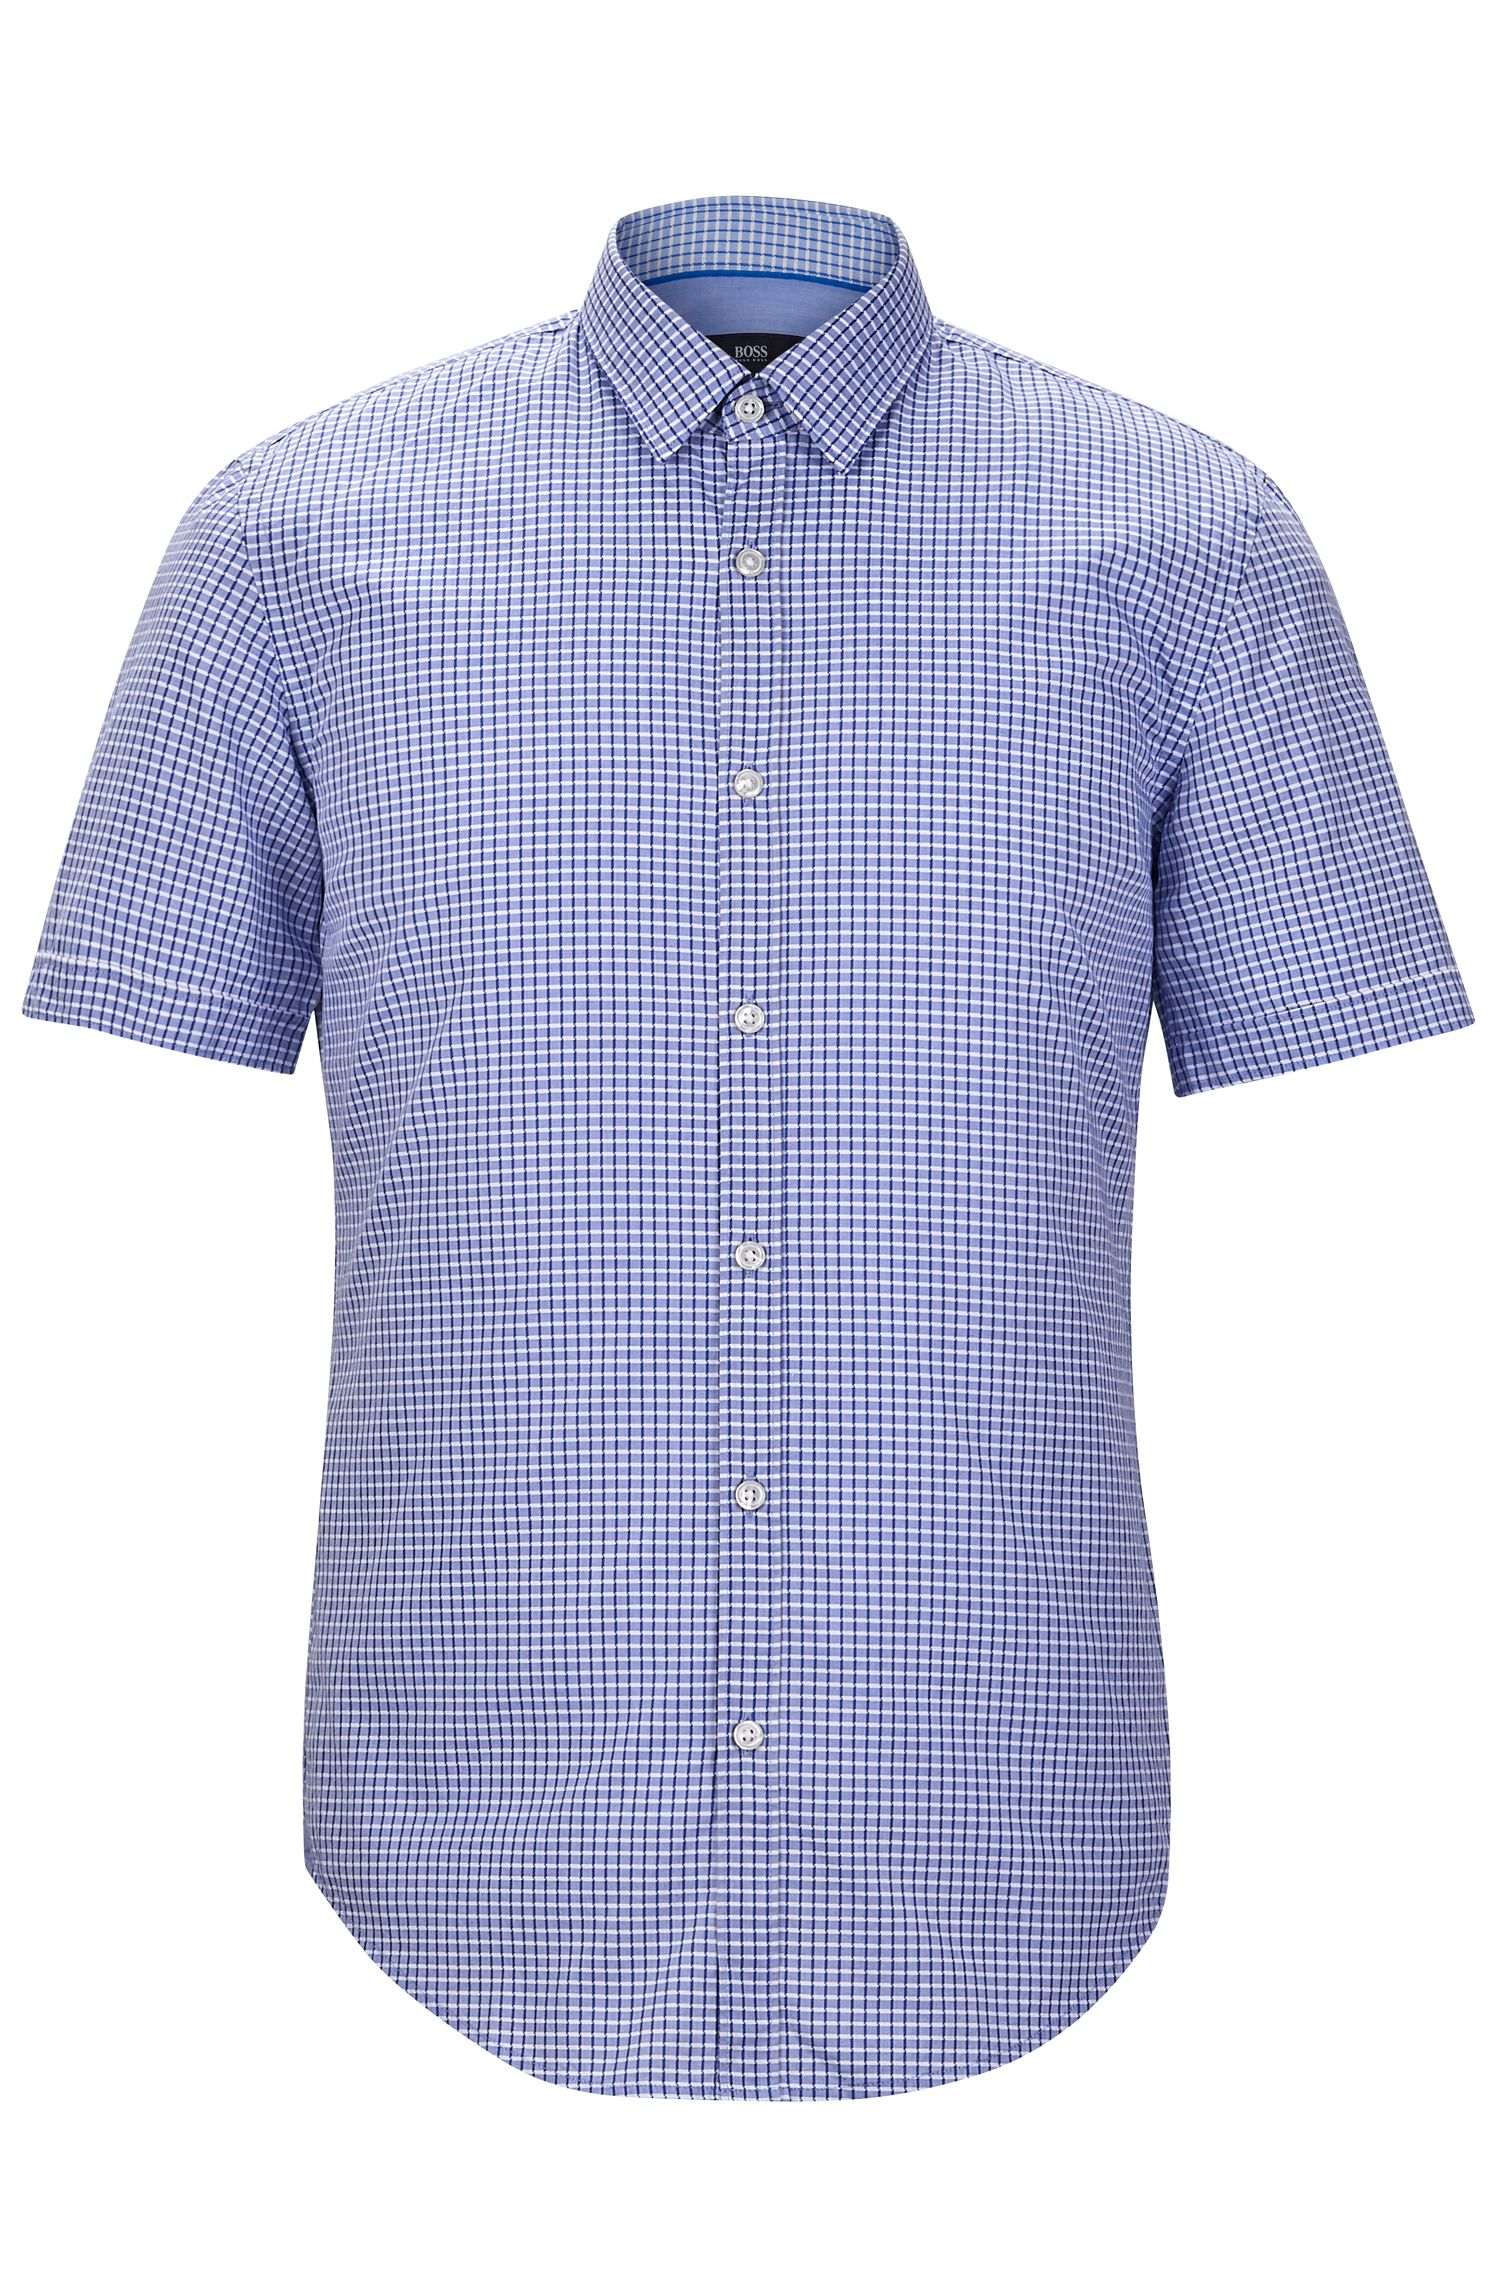 'Ronn' | Slim Fit, Check Garment Washed Cotton Blend Button-Down Shirt